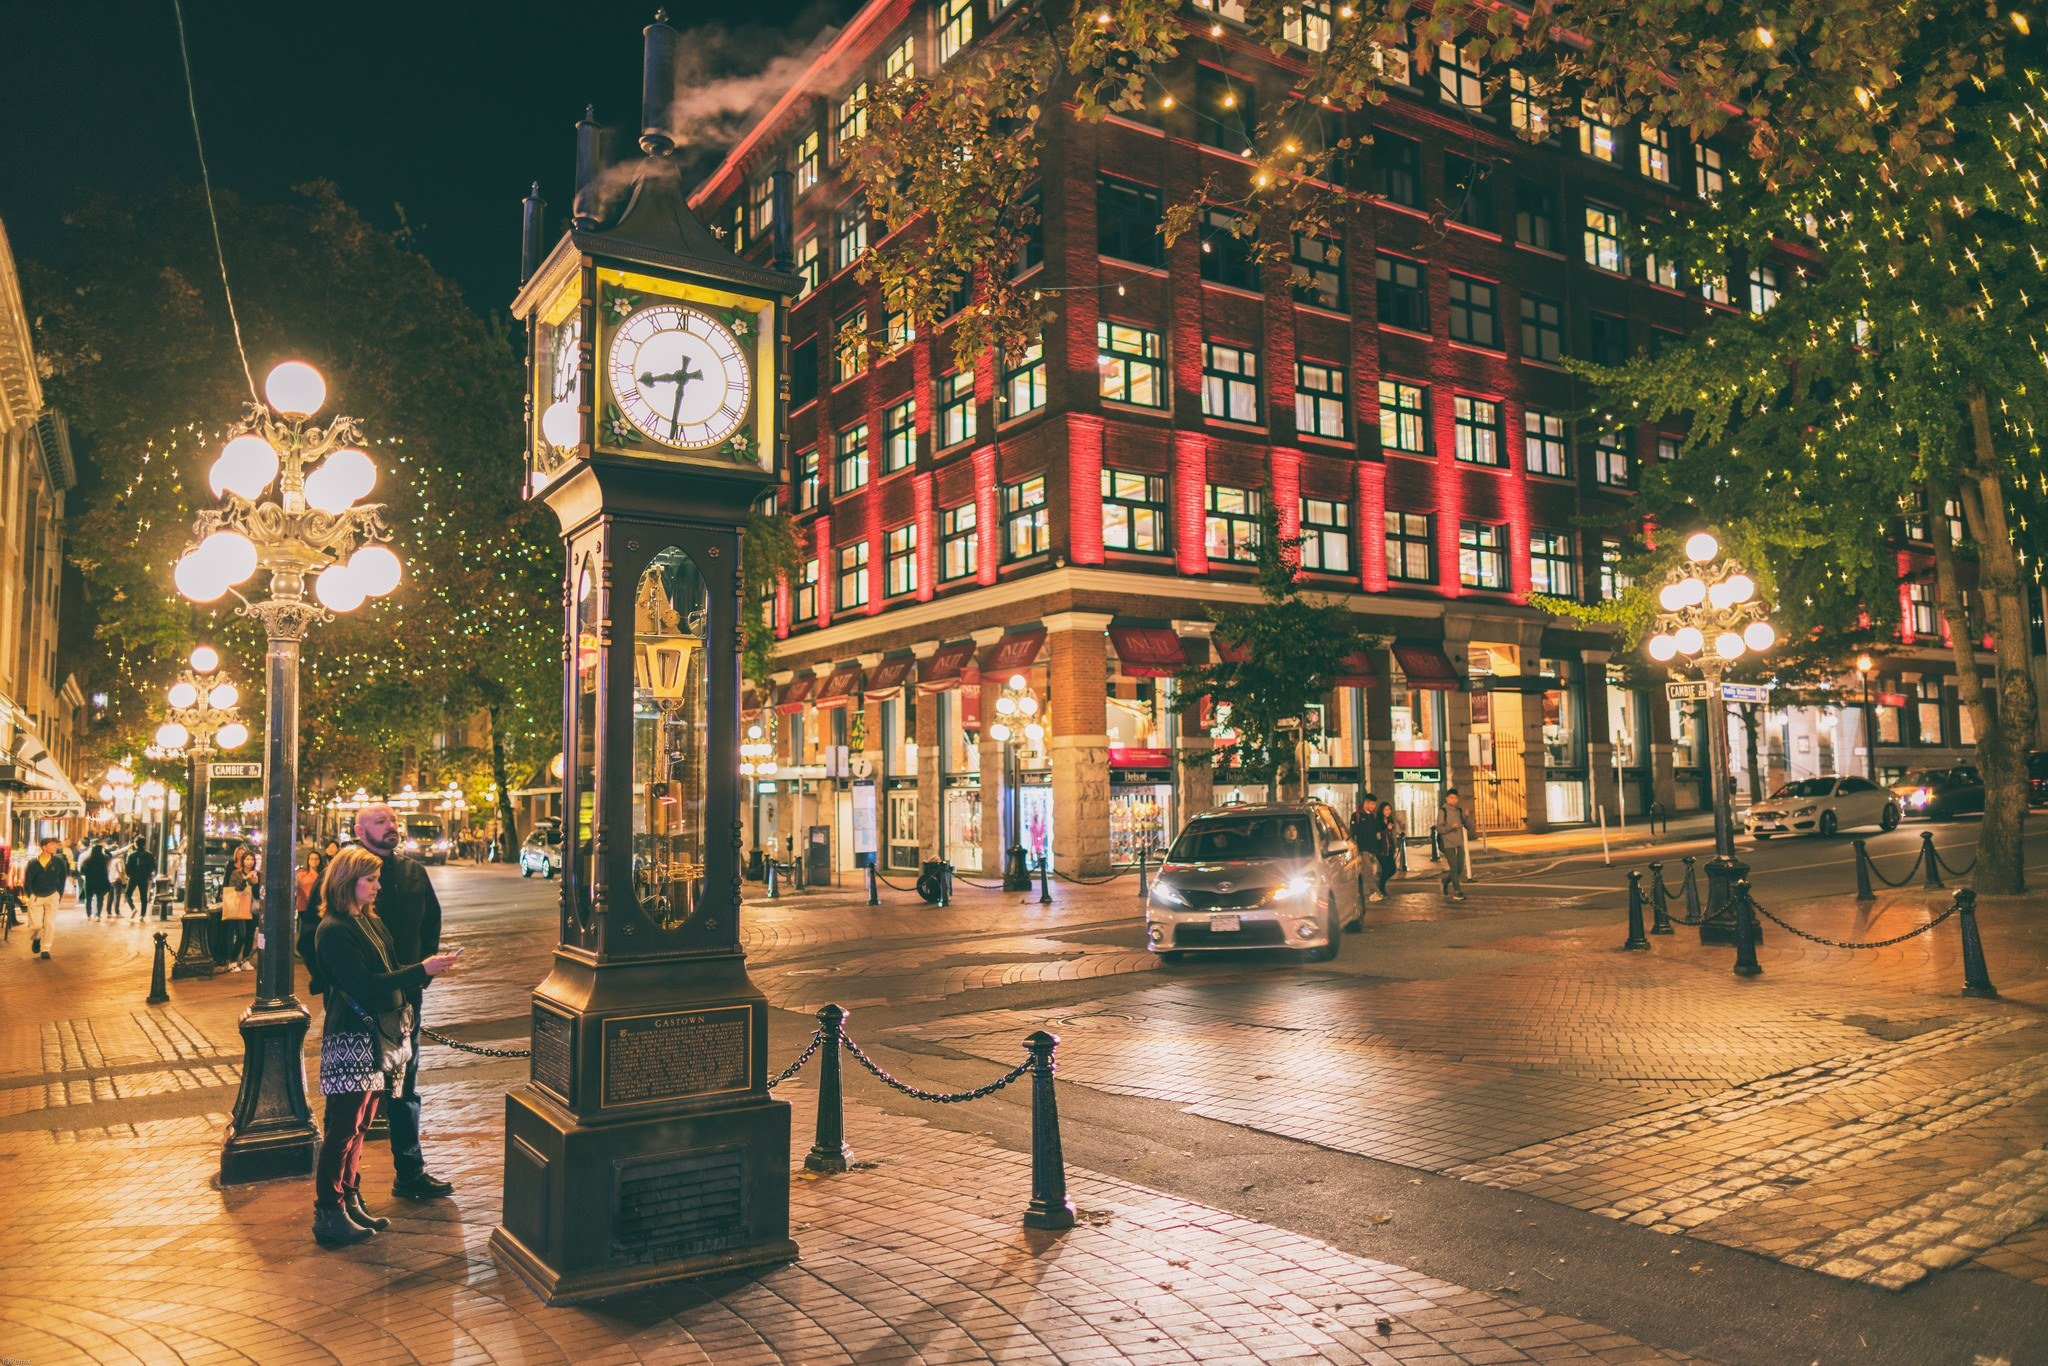 gastown steam clock backpacking vancouver